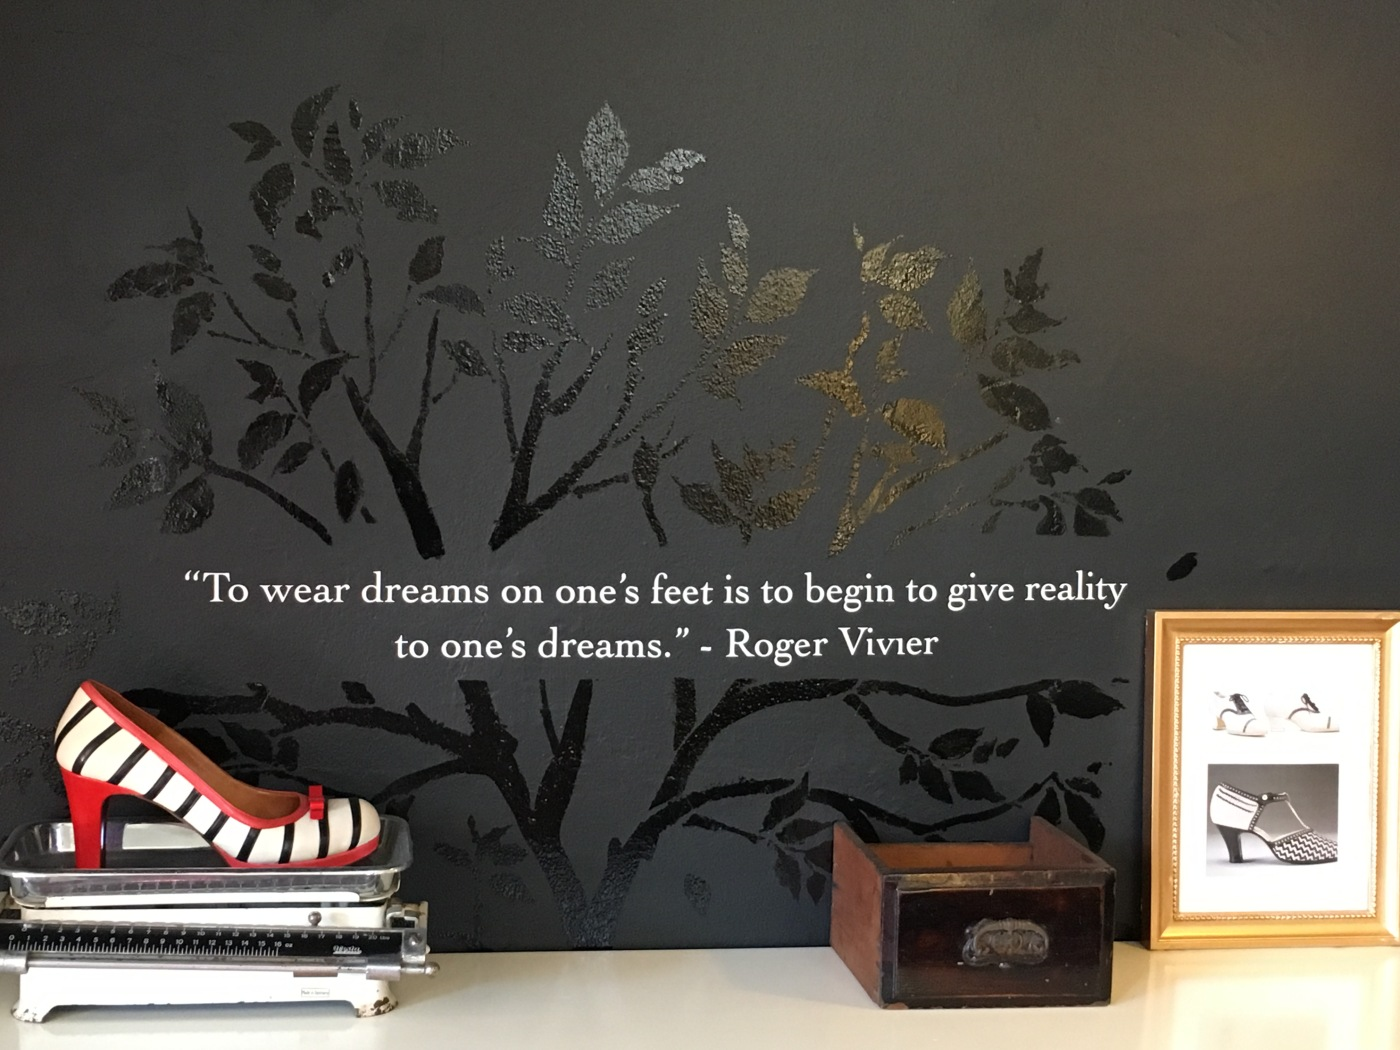 "A Quote Written on a Black Wall that Says, ""To wear dreams on one's feet is to begin to give reality to one's dreams."" - Roger Vivier Quote at The Cook, His Wife and Her Shoes in the Surry Hills Suburb of Sydney, Australia"